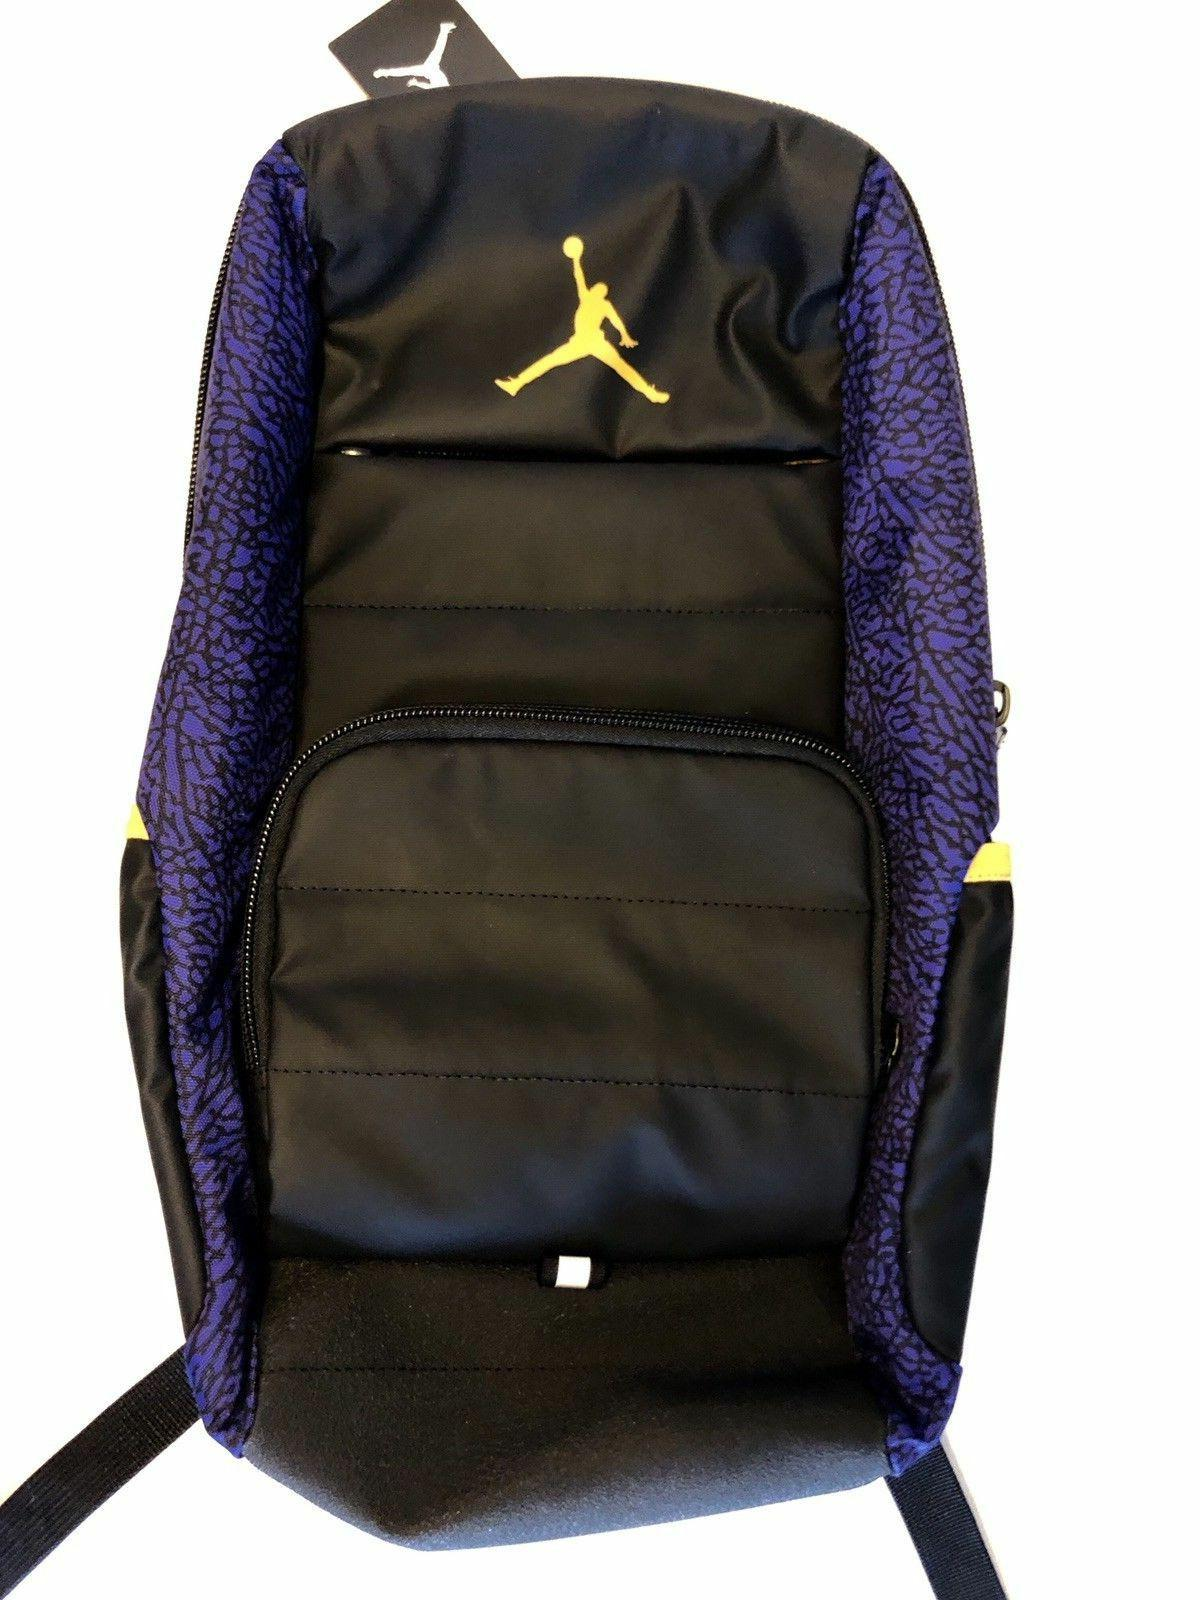 nEW Jumpman Styles Athletics